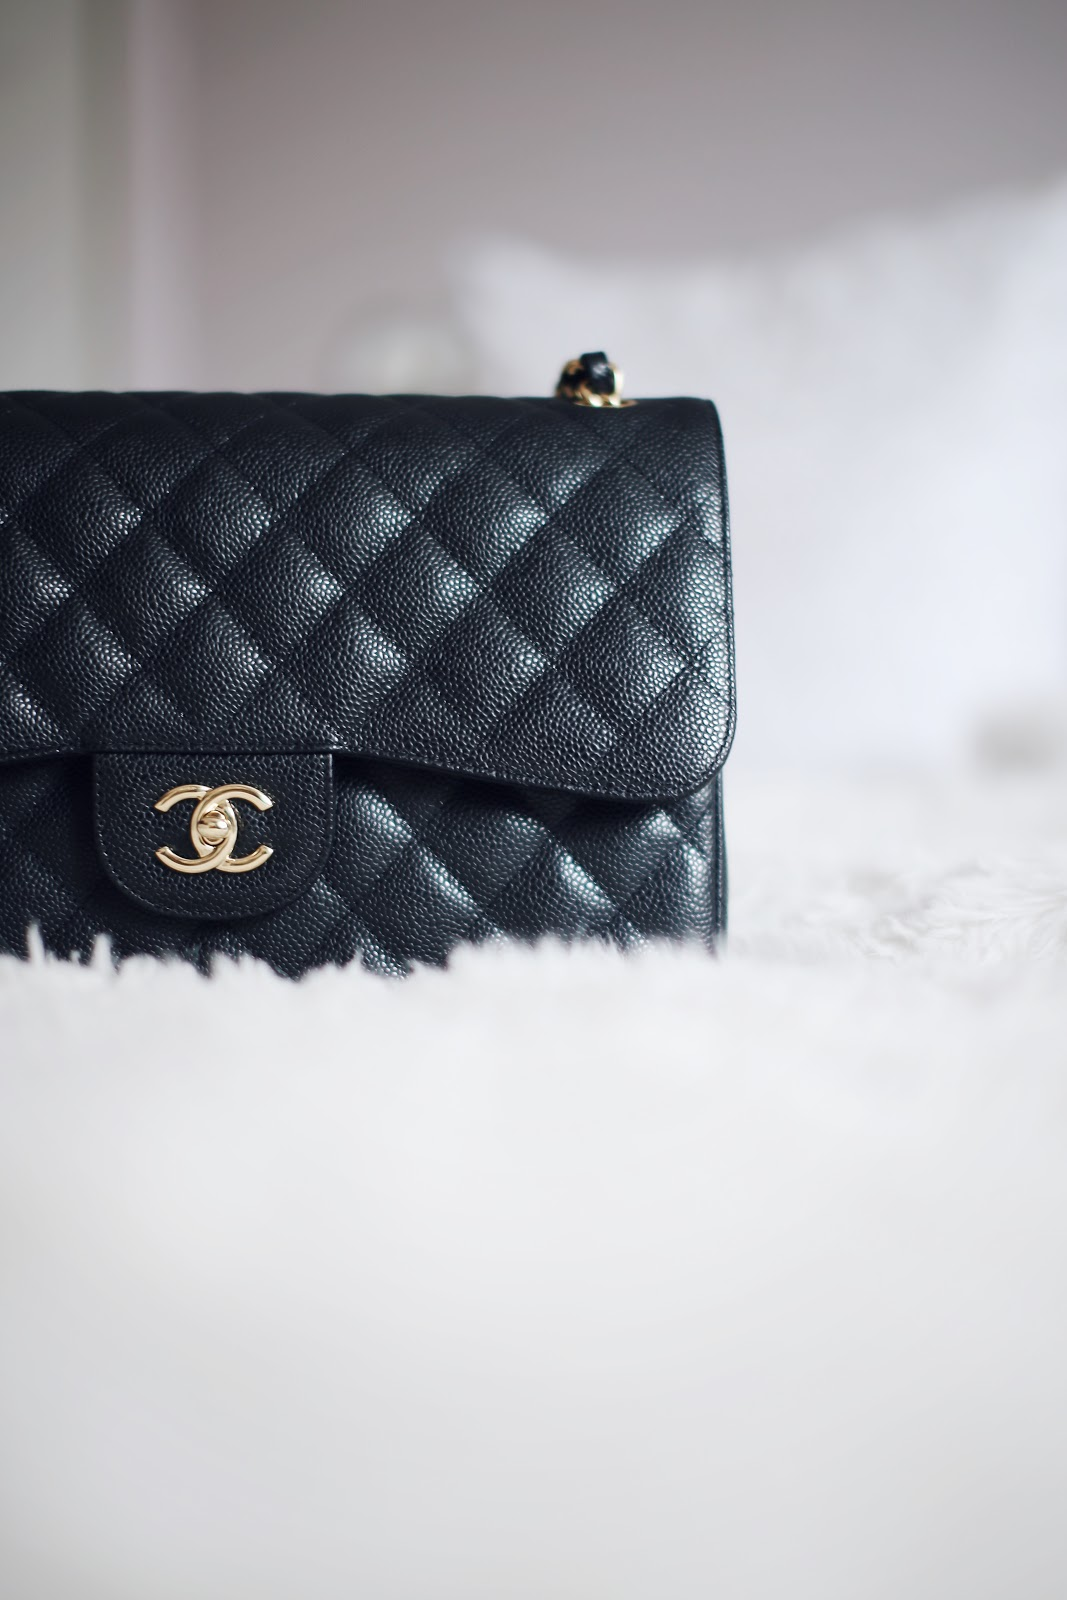 b7dd5eea1045 The Chanel Classic flap is simple yet timeless, a style I appreciate and  look for when it comes to handbags. As my collection grows, I know that  this was a ...